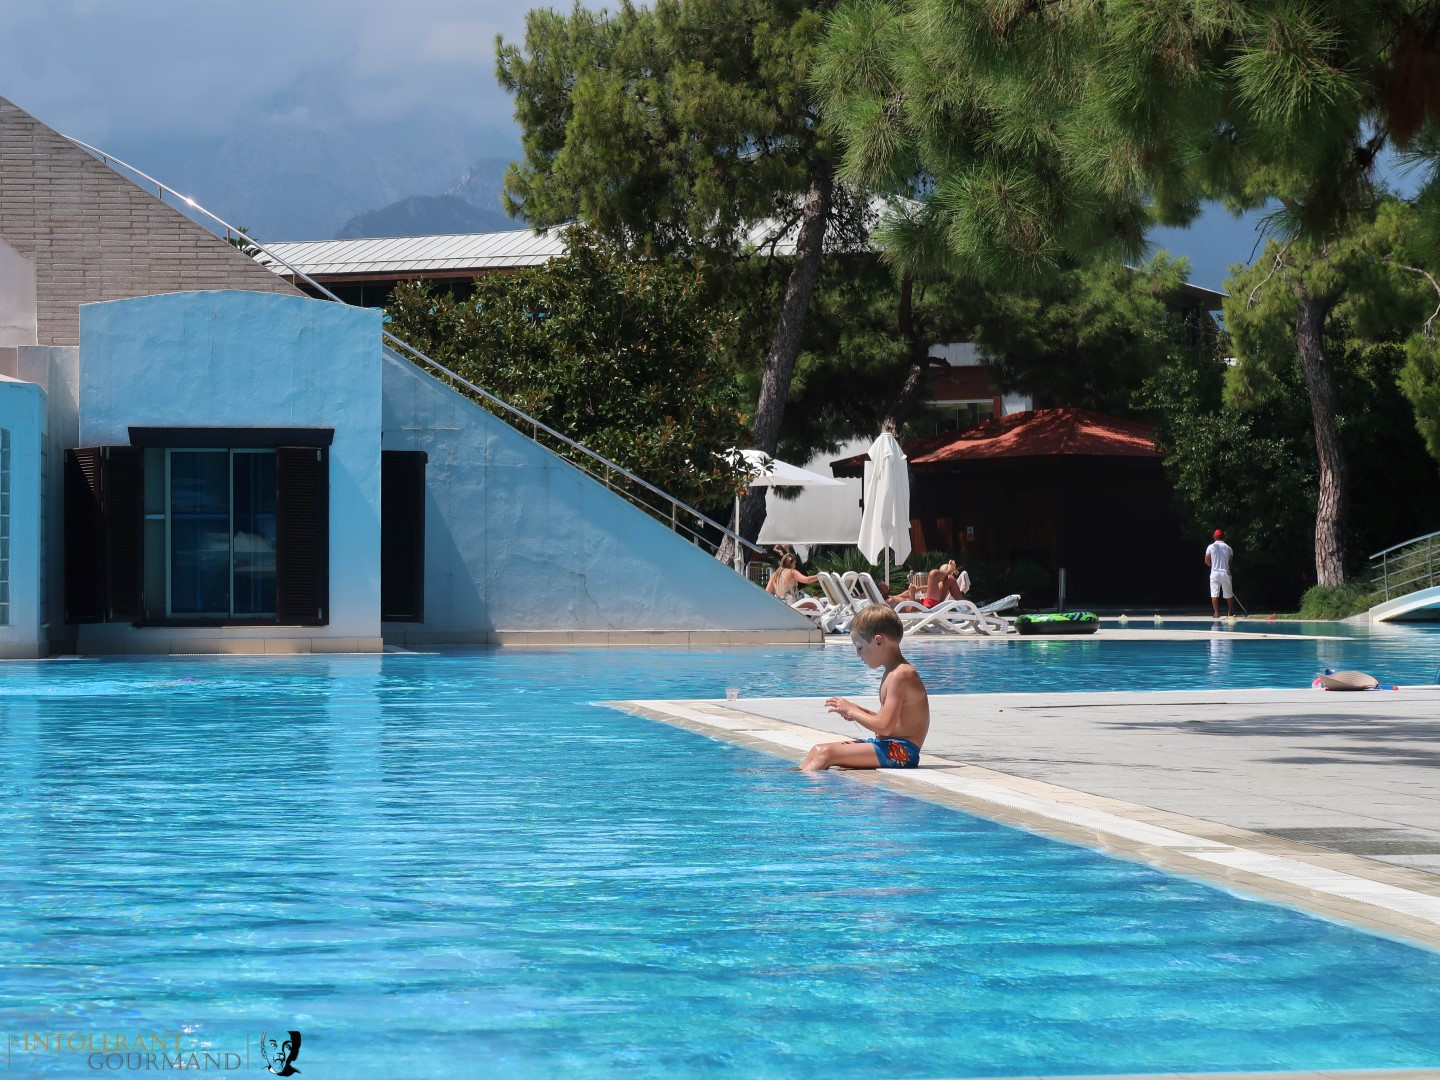 Rixos Sungate Kemer Antalya with Jet 2 Holidays - little boy sat on the side of a quiet swimming pool, contemplating. www.intolerantgourmand.com